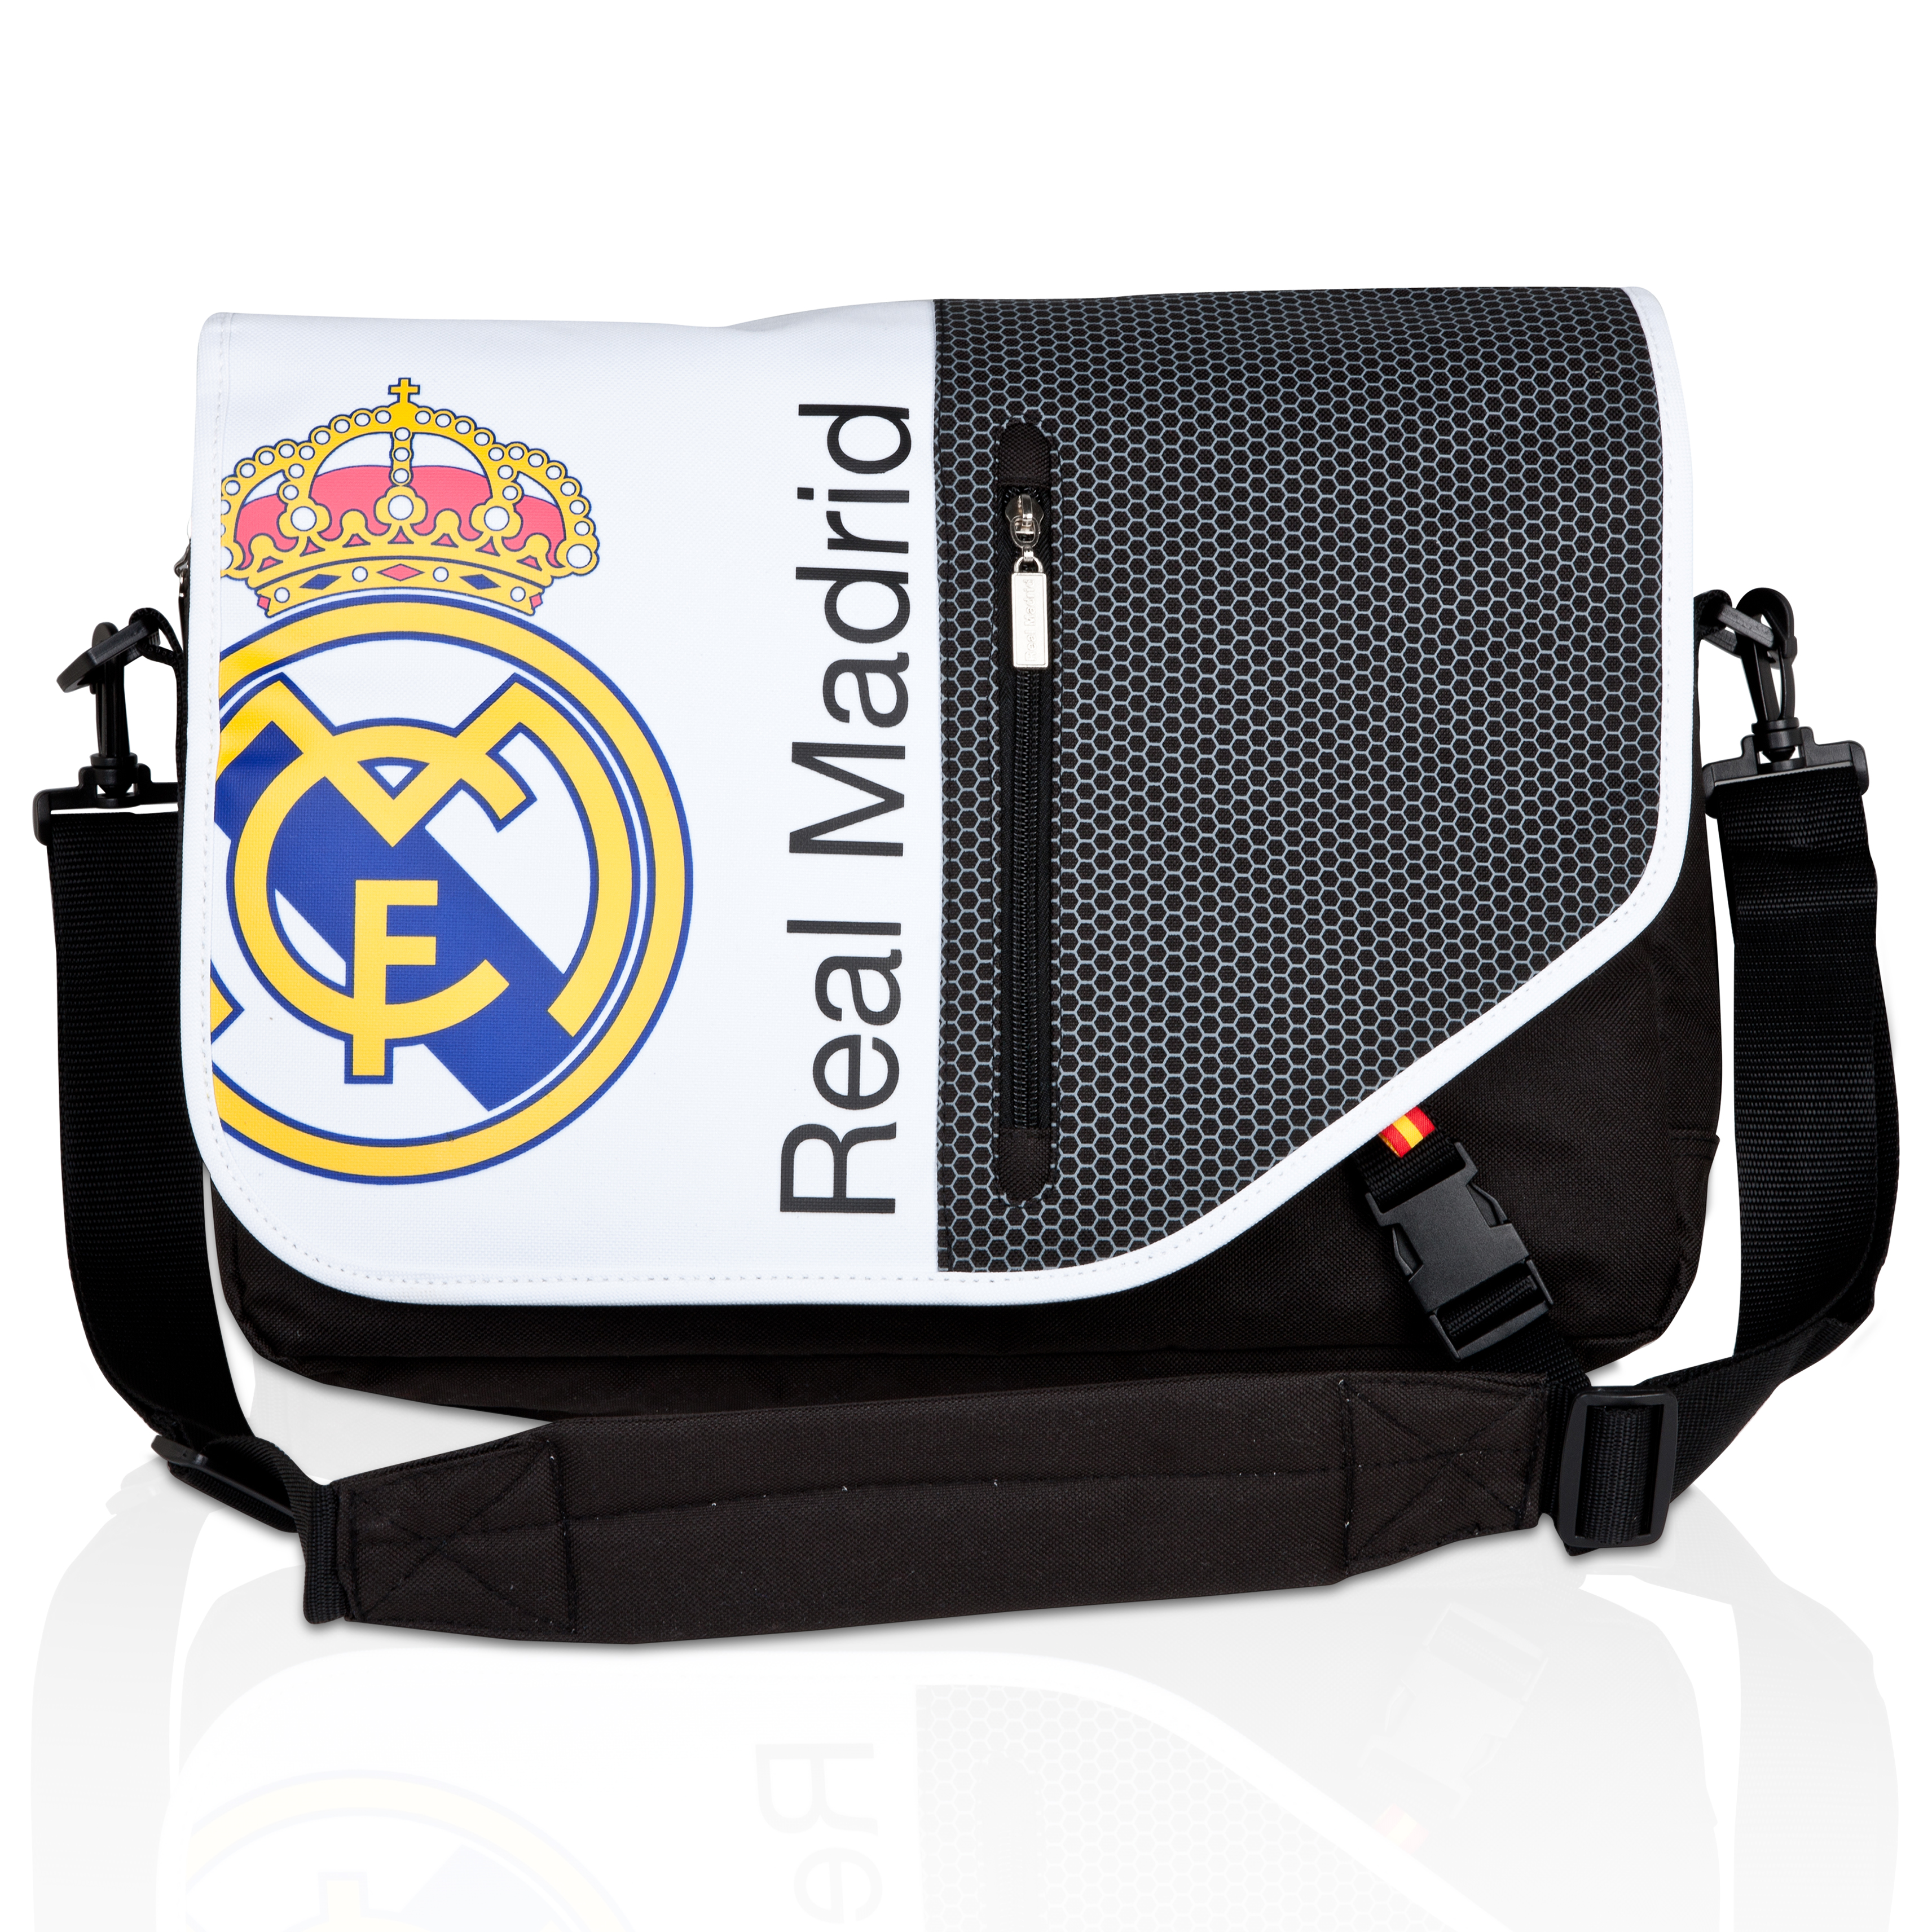 Funda porttil bandolera Real Madrid - 40 cm